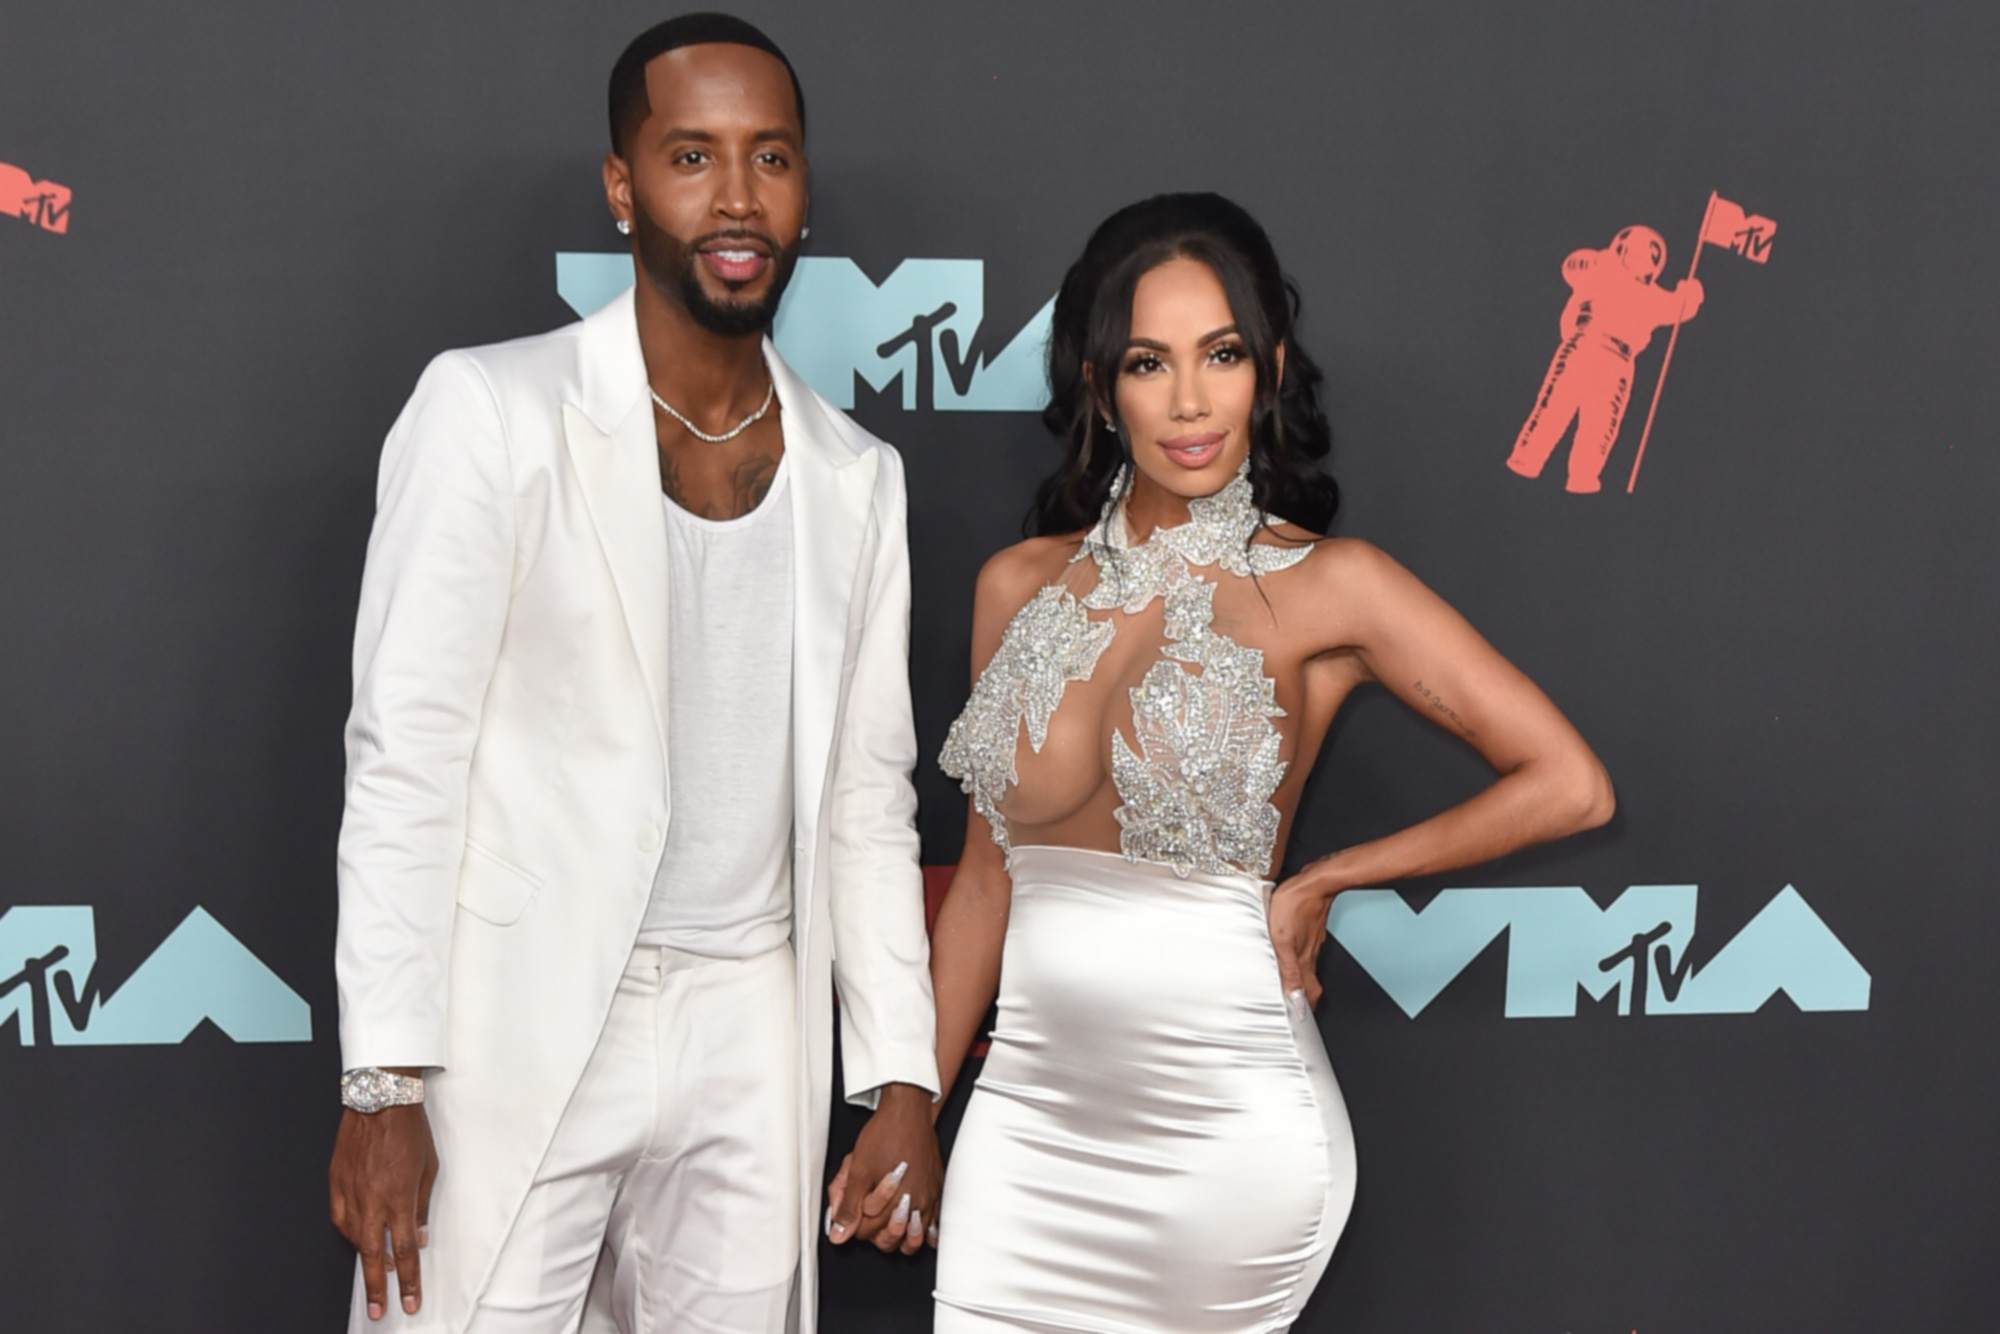 Erica Mena Flaunts Her Beach Body And Shows Off A Natural Glow